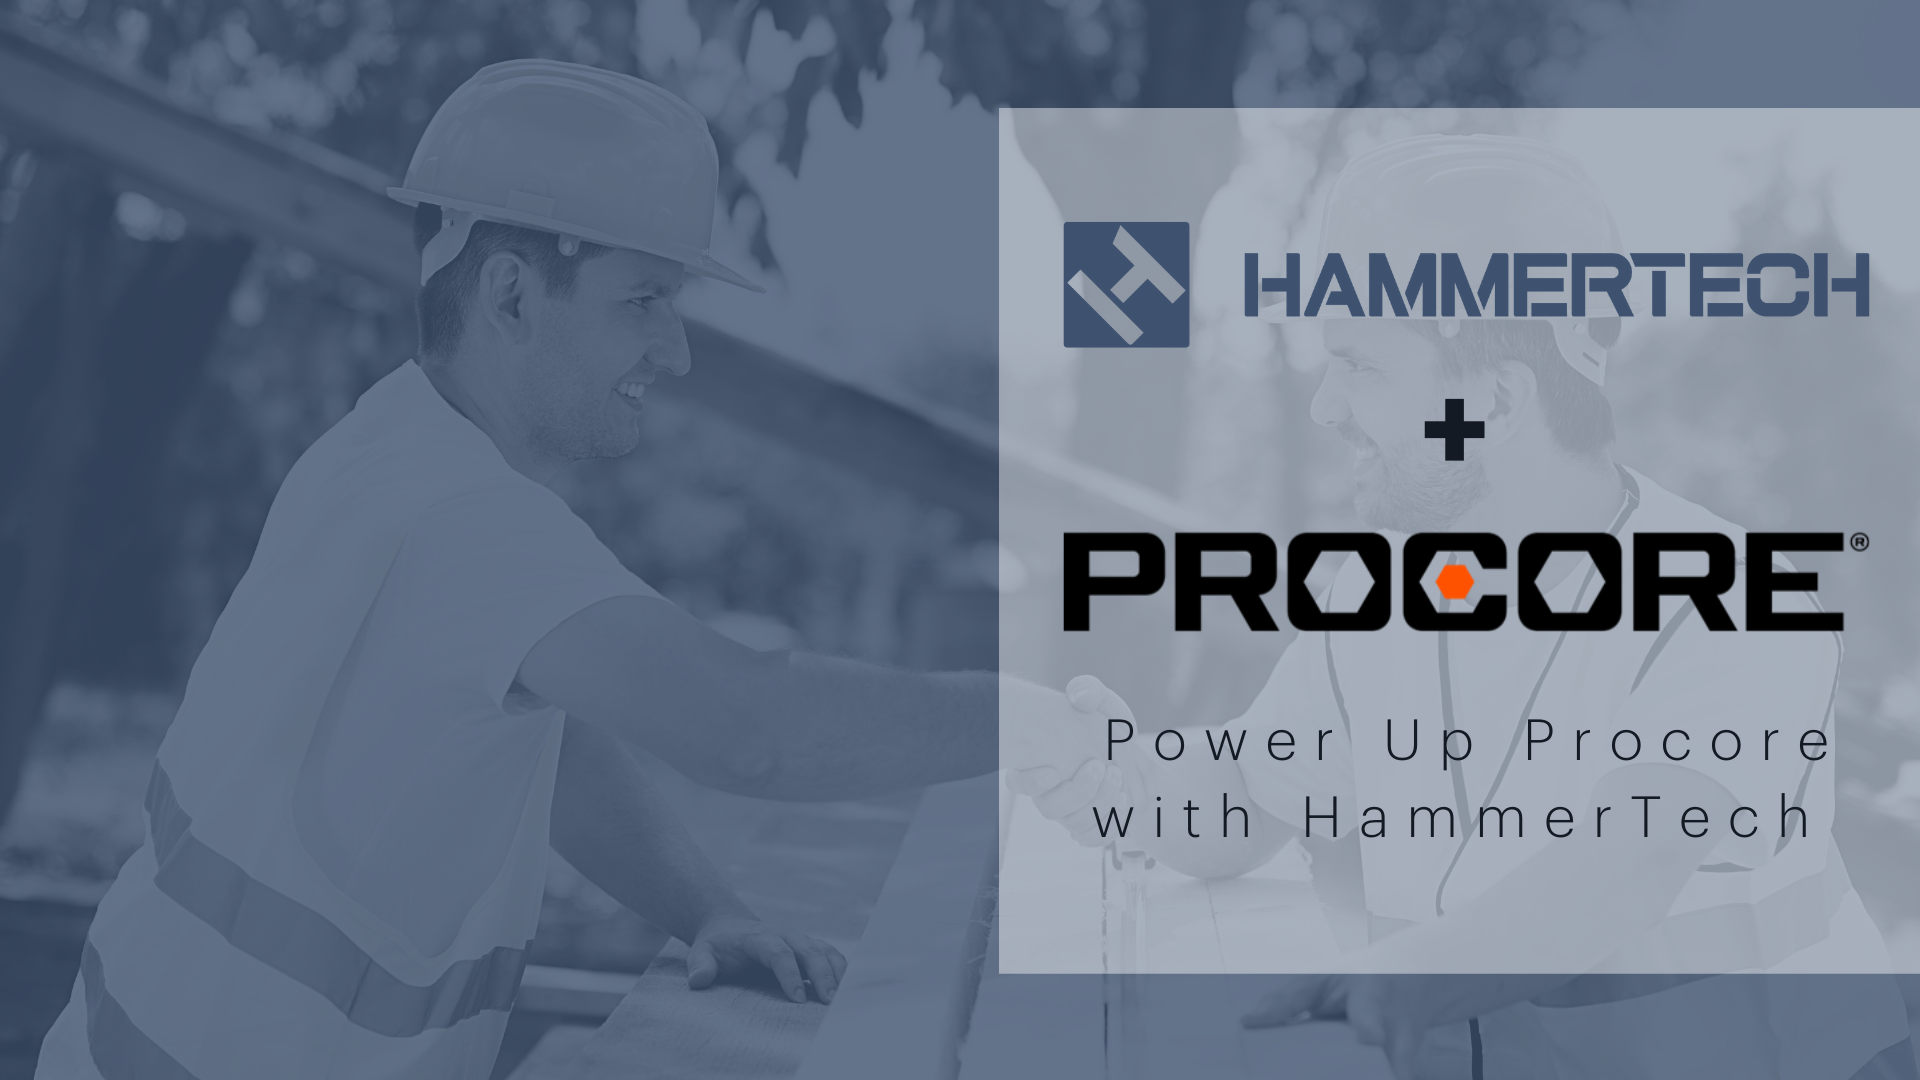 HammerTech Announces Integration with Procore to Provide Connected Safety and Operations